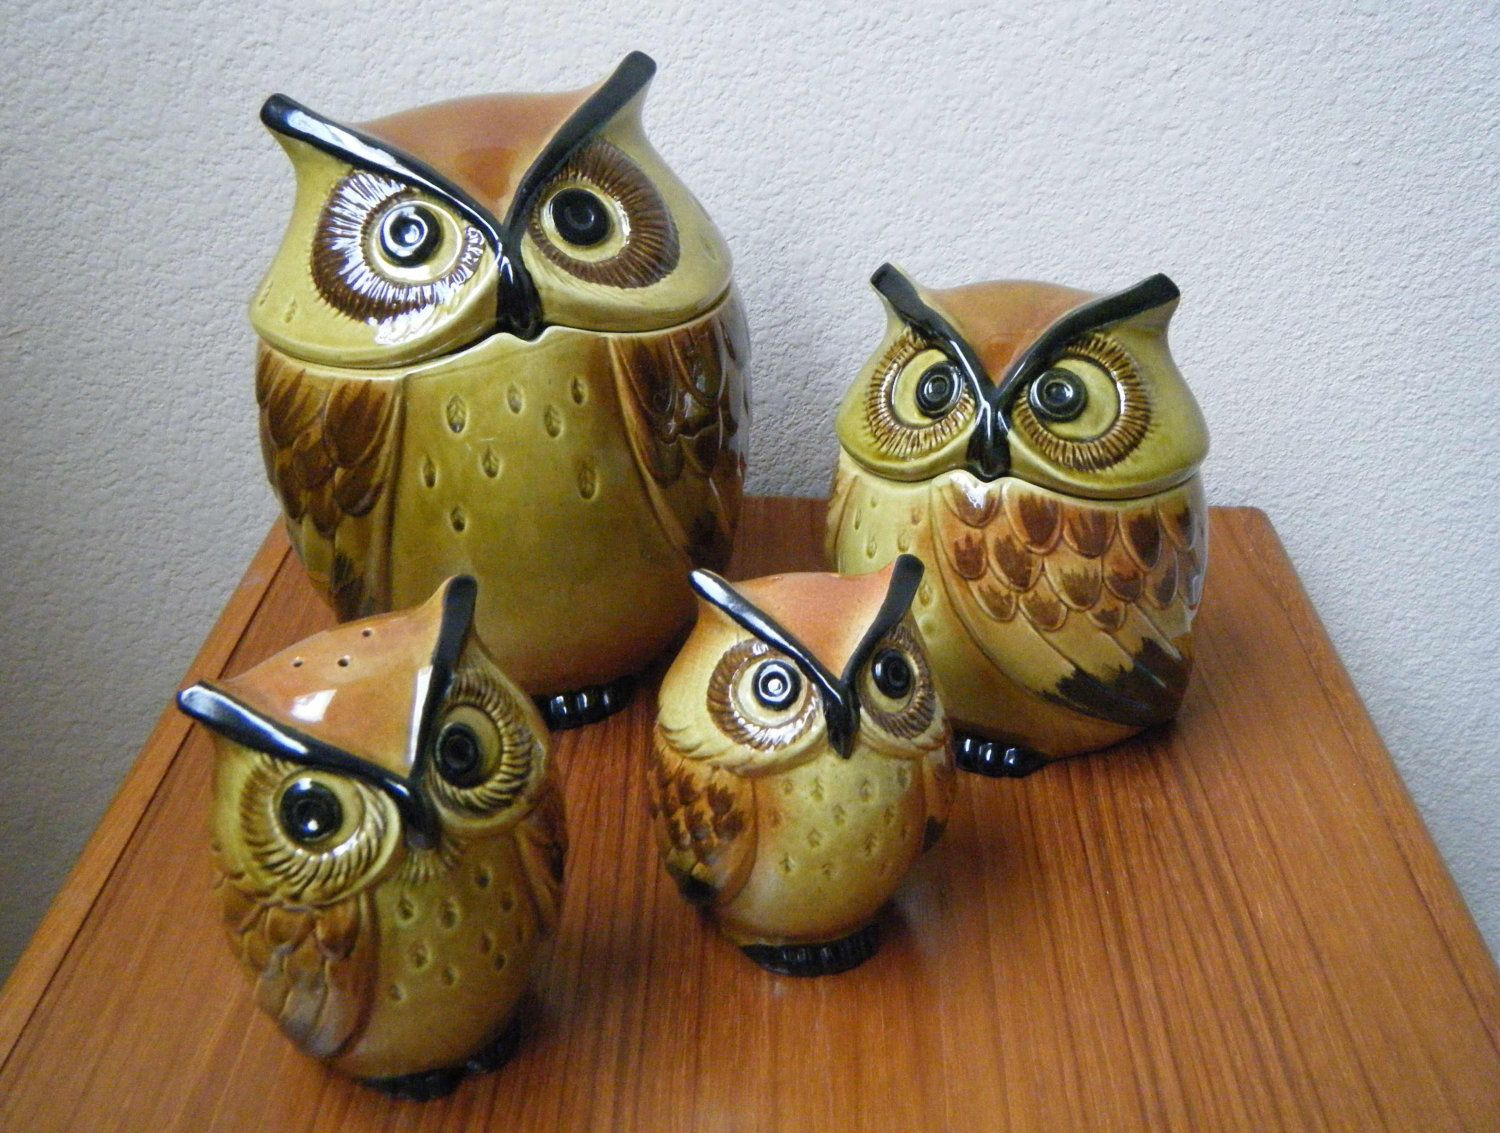 Ceramic Cookie Jar Sets Rare Metlox Poppytrail Ceramic Owl Kitchen Set Cookie